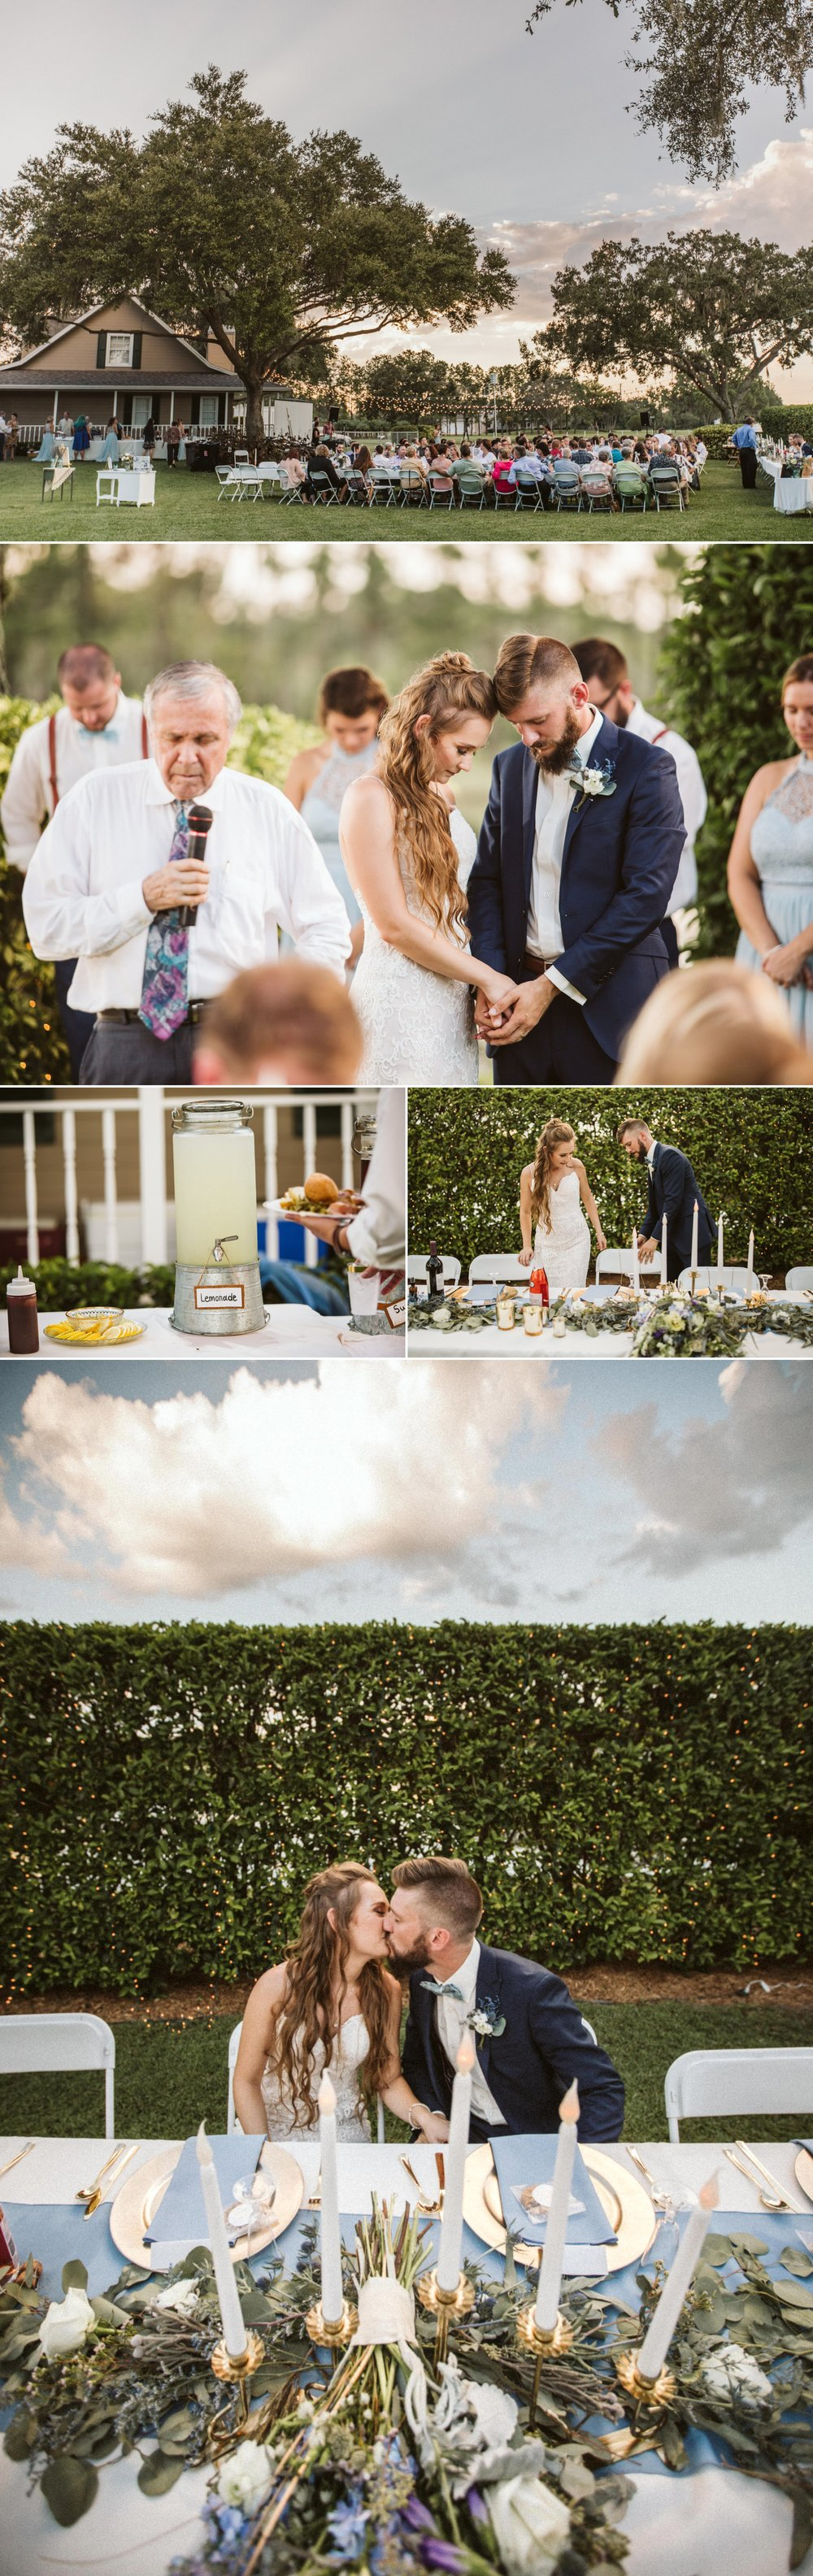 Romantic Floral Outdoor Field Chapel Wedding- Sarasota Florida- Courtney & Isaac23.jpg